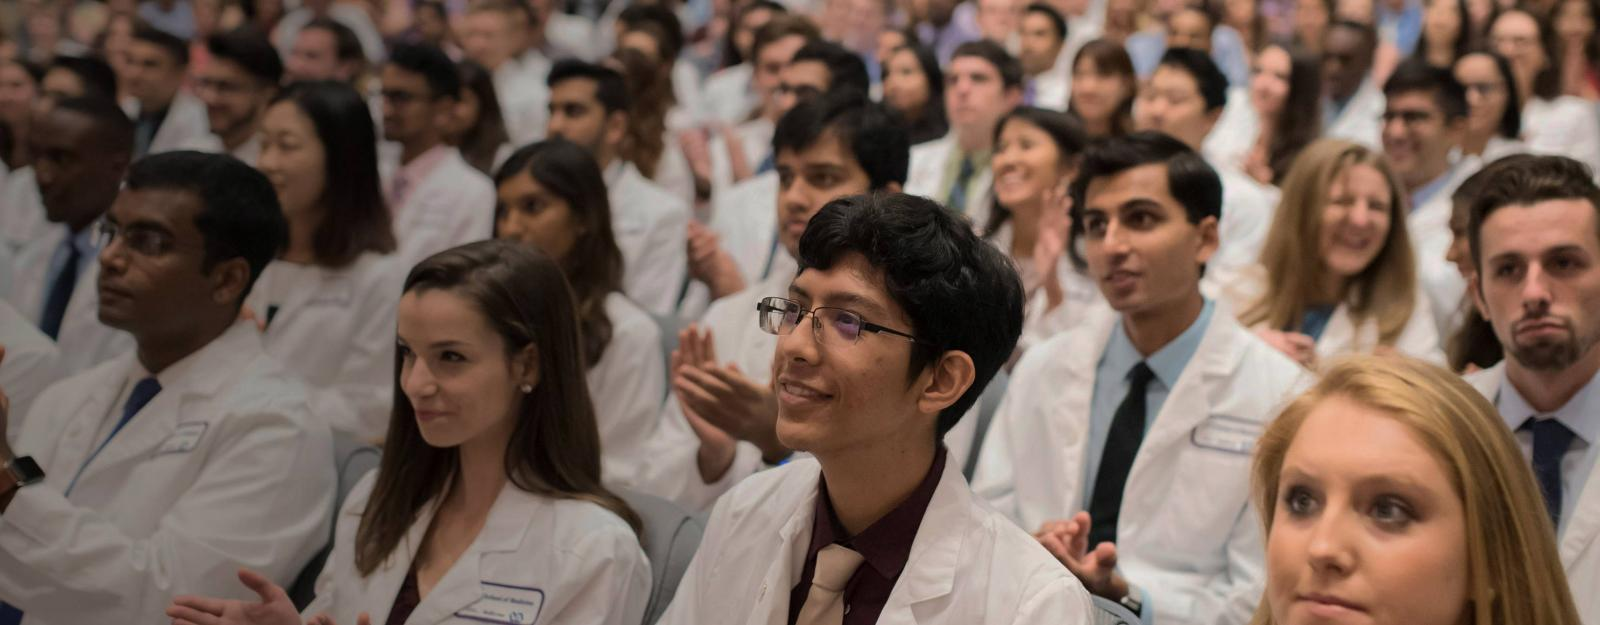 Education & Research at NYU Langone Health | NYU Langone Health